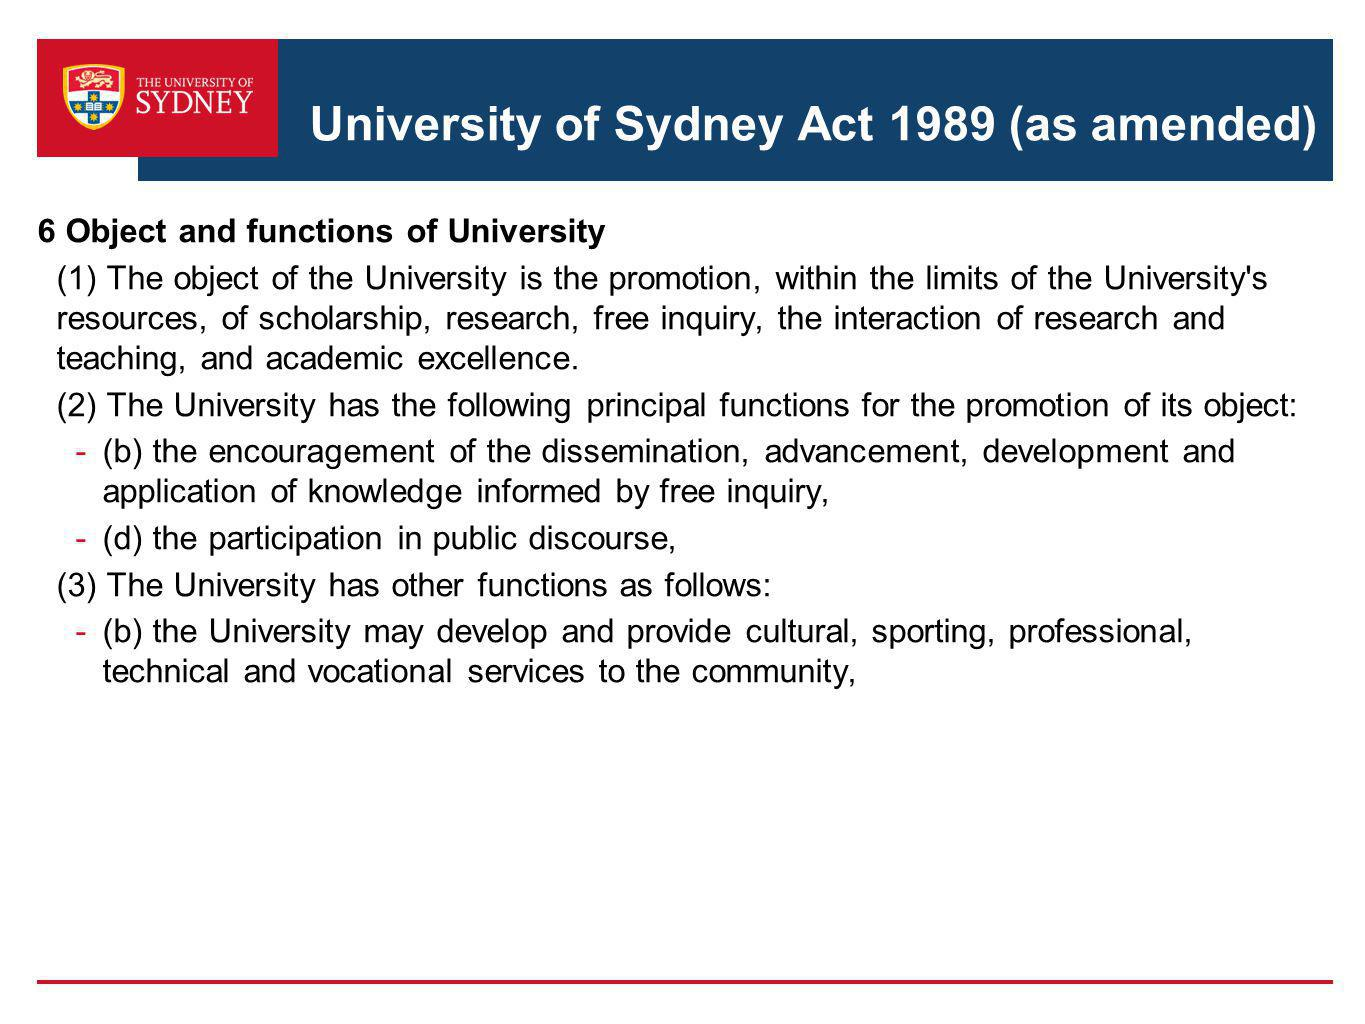 University of Sydney Act 1989 (as amended) 6 Object and functions of University (1) The object of the University is the promotion, within the limits of the University s resources, of scholarship, research, free inquiry, the interaction of research and teaching, and academic excellence.